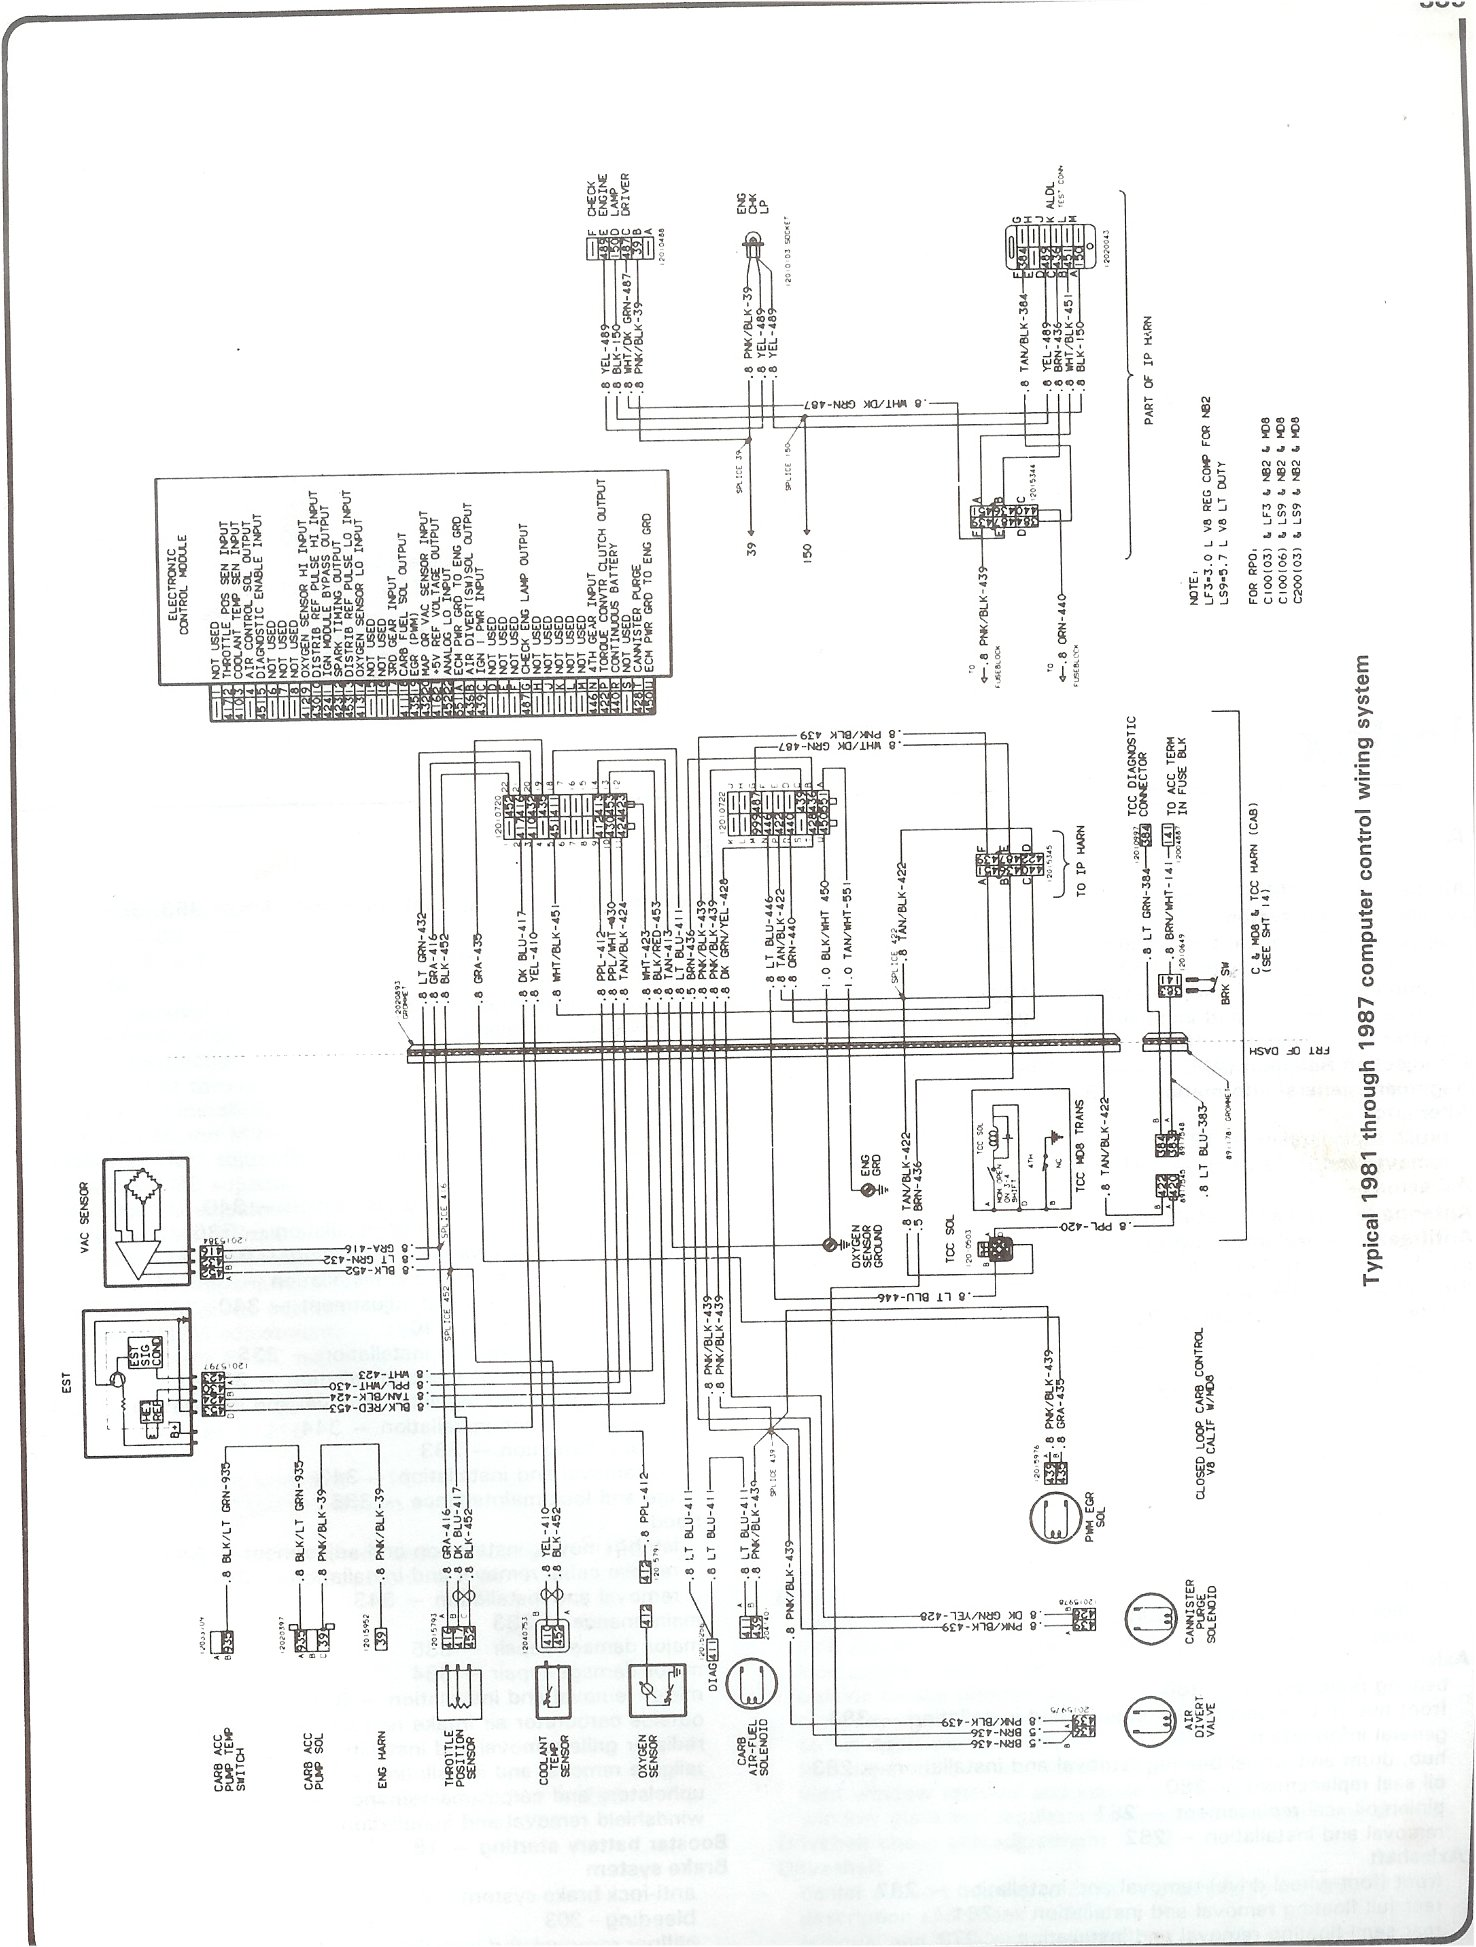 complete 73 87 wiring diagrams rh forum 73 87chevytrucks com 2012 Chevy Truck Wiring Diagram 1985 Chevy Truck Wiring Diagram